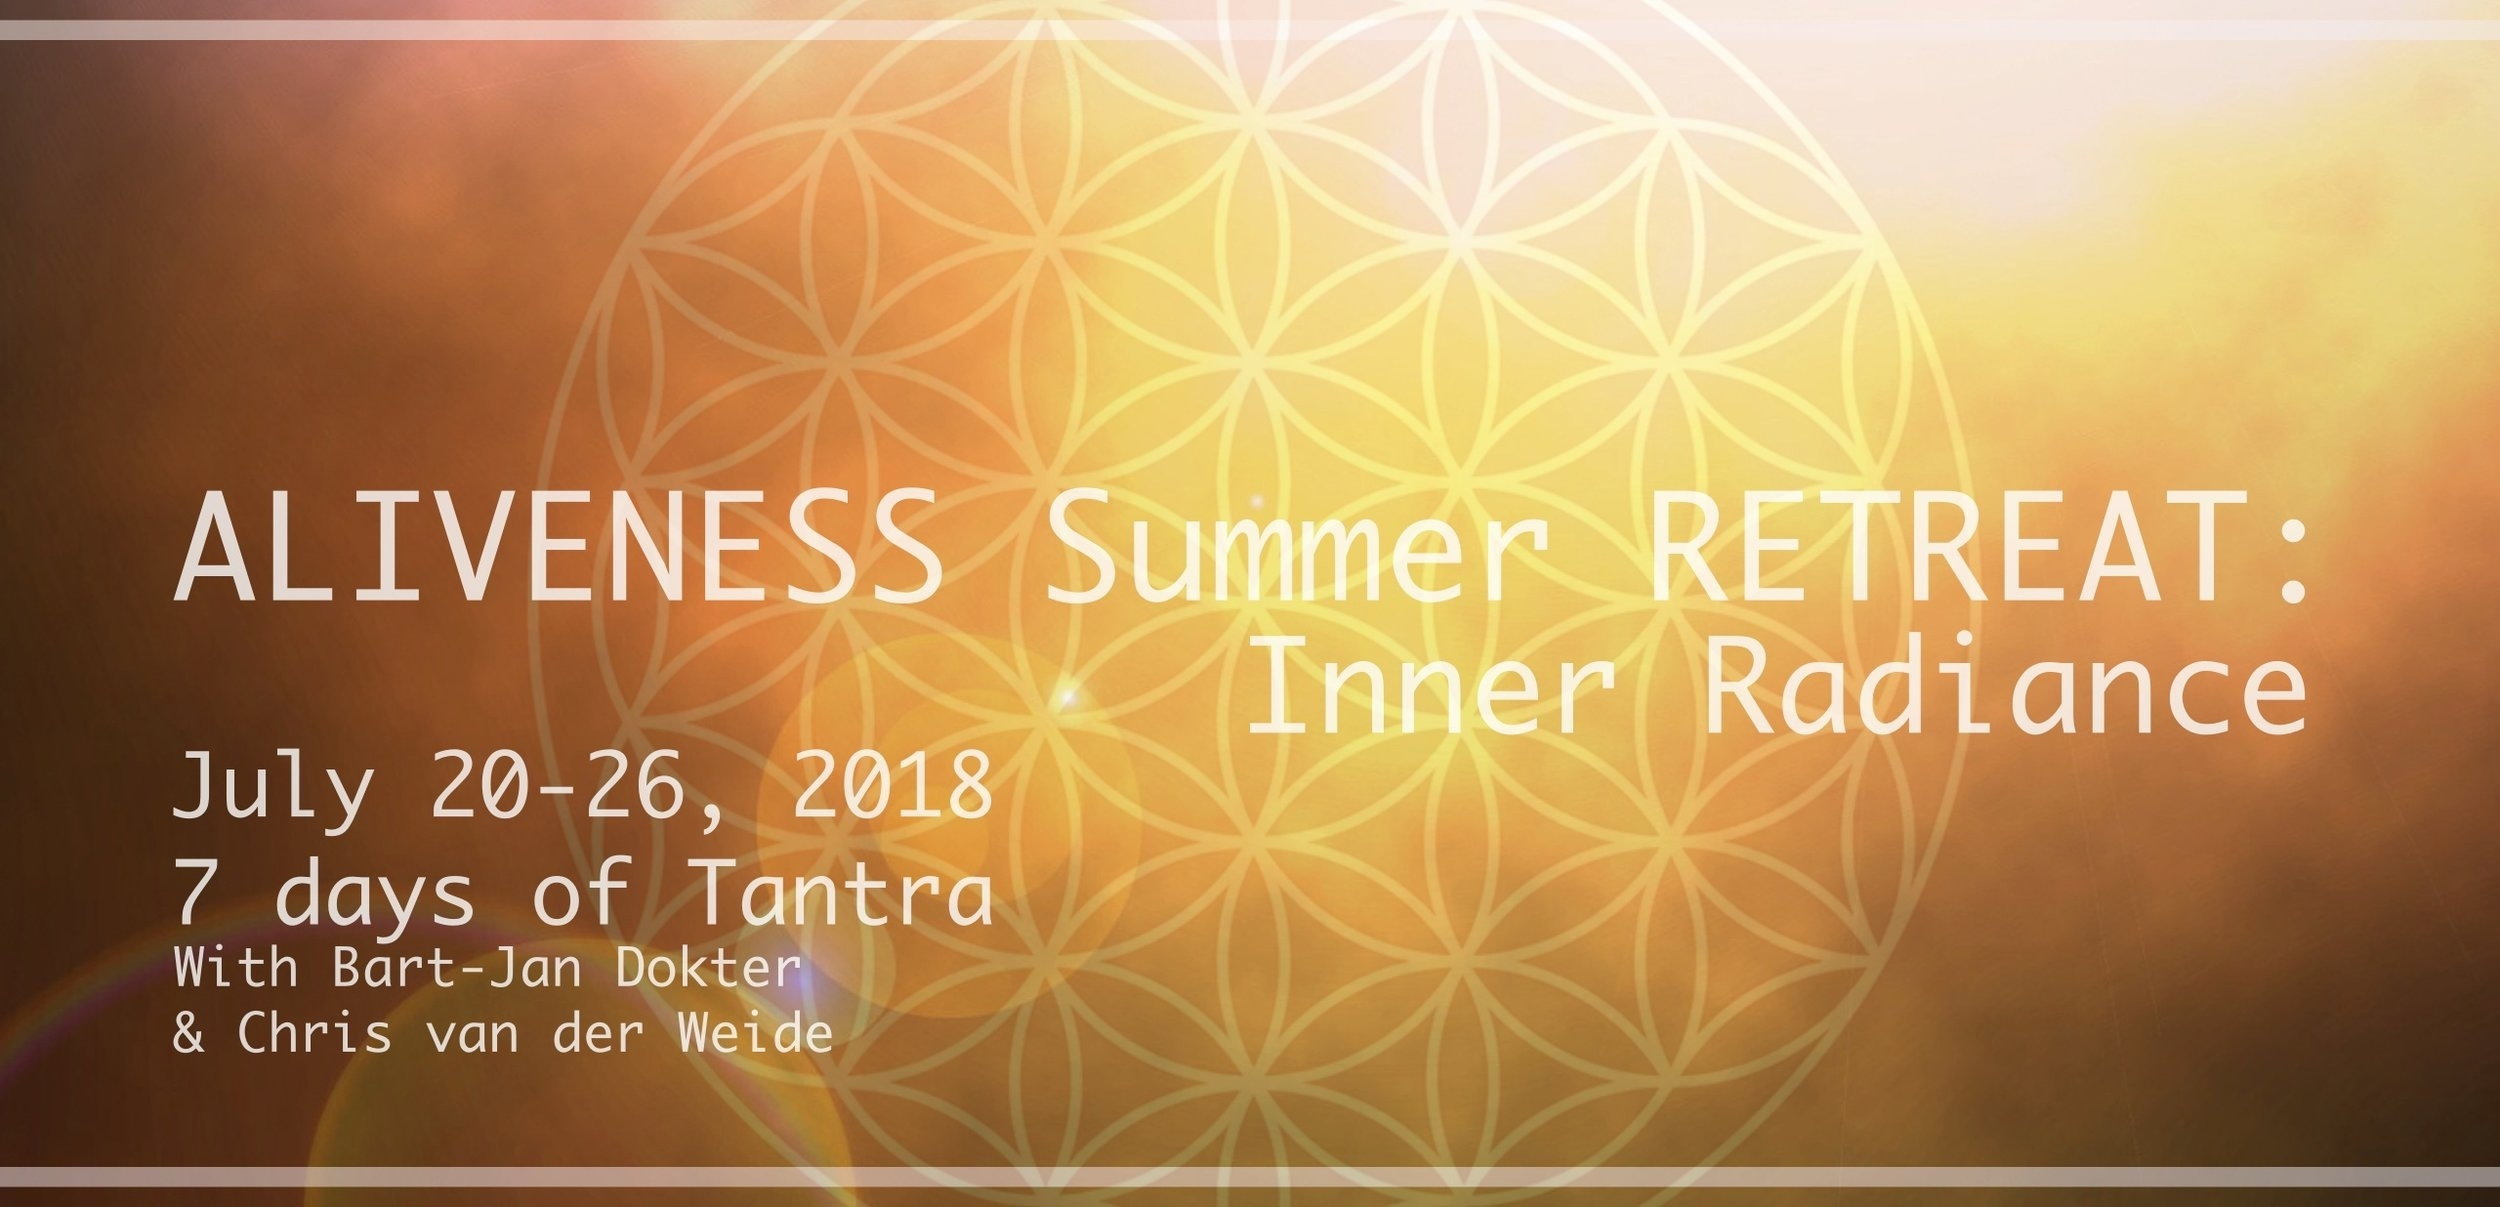 ALIVENESS Summer RETREAT banner 2.jpg